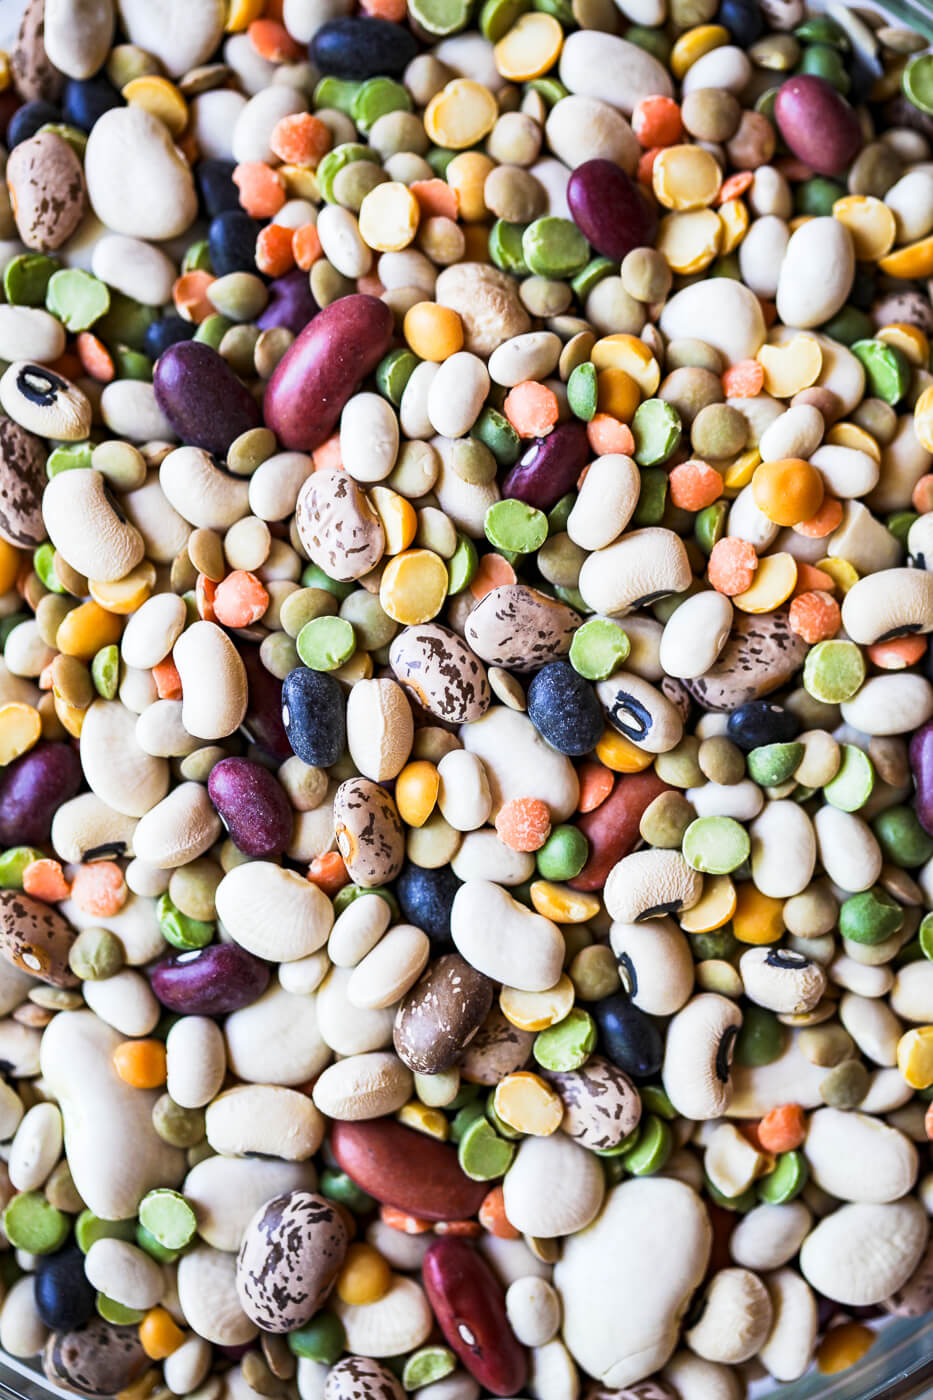 A close-up photo of mixed legumes including beans and split peas.